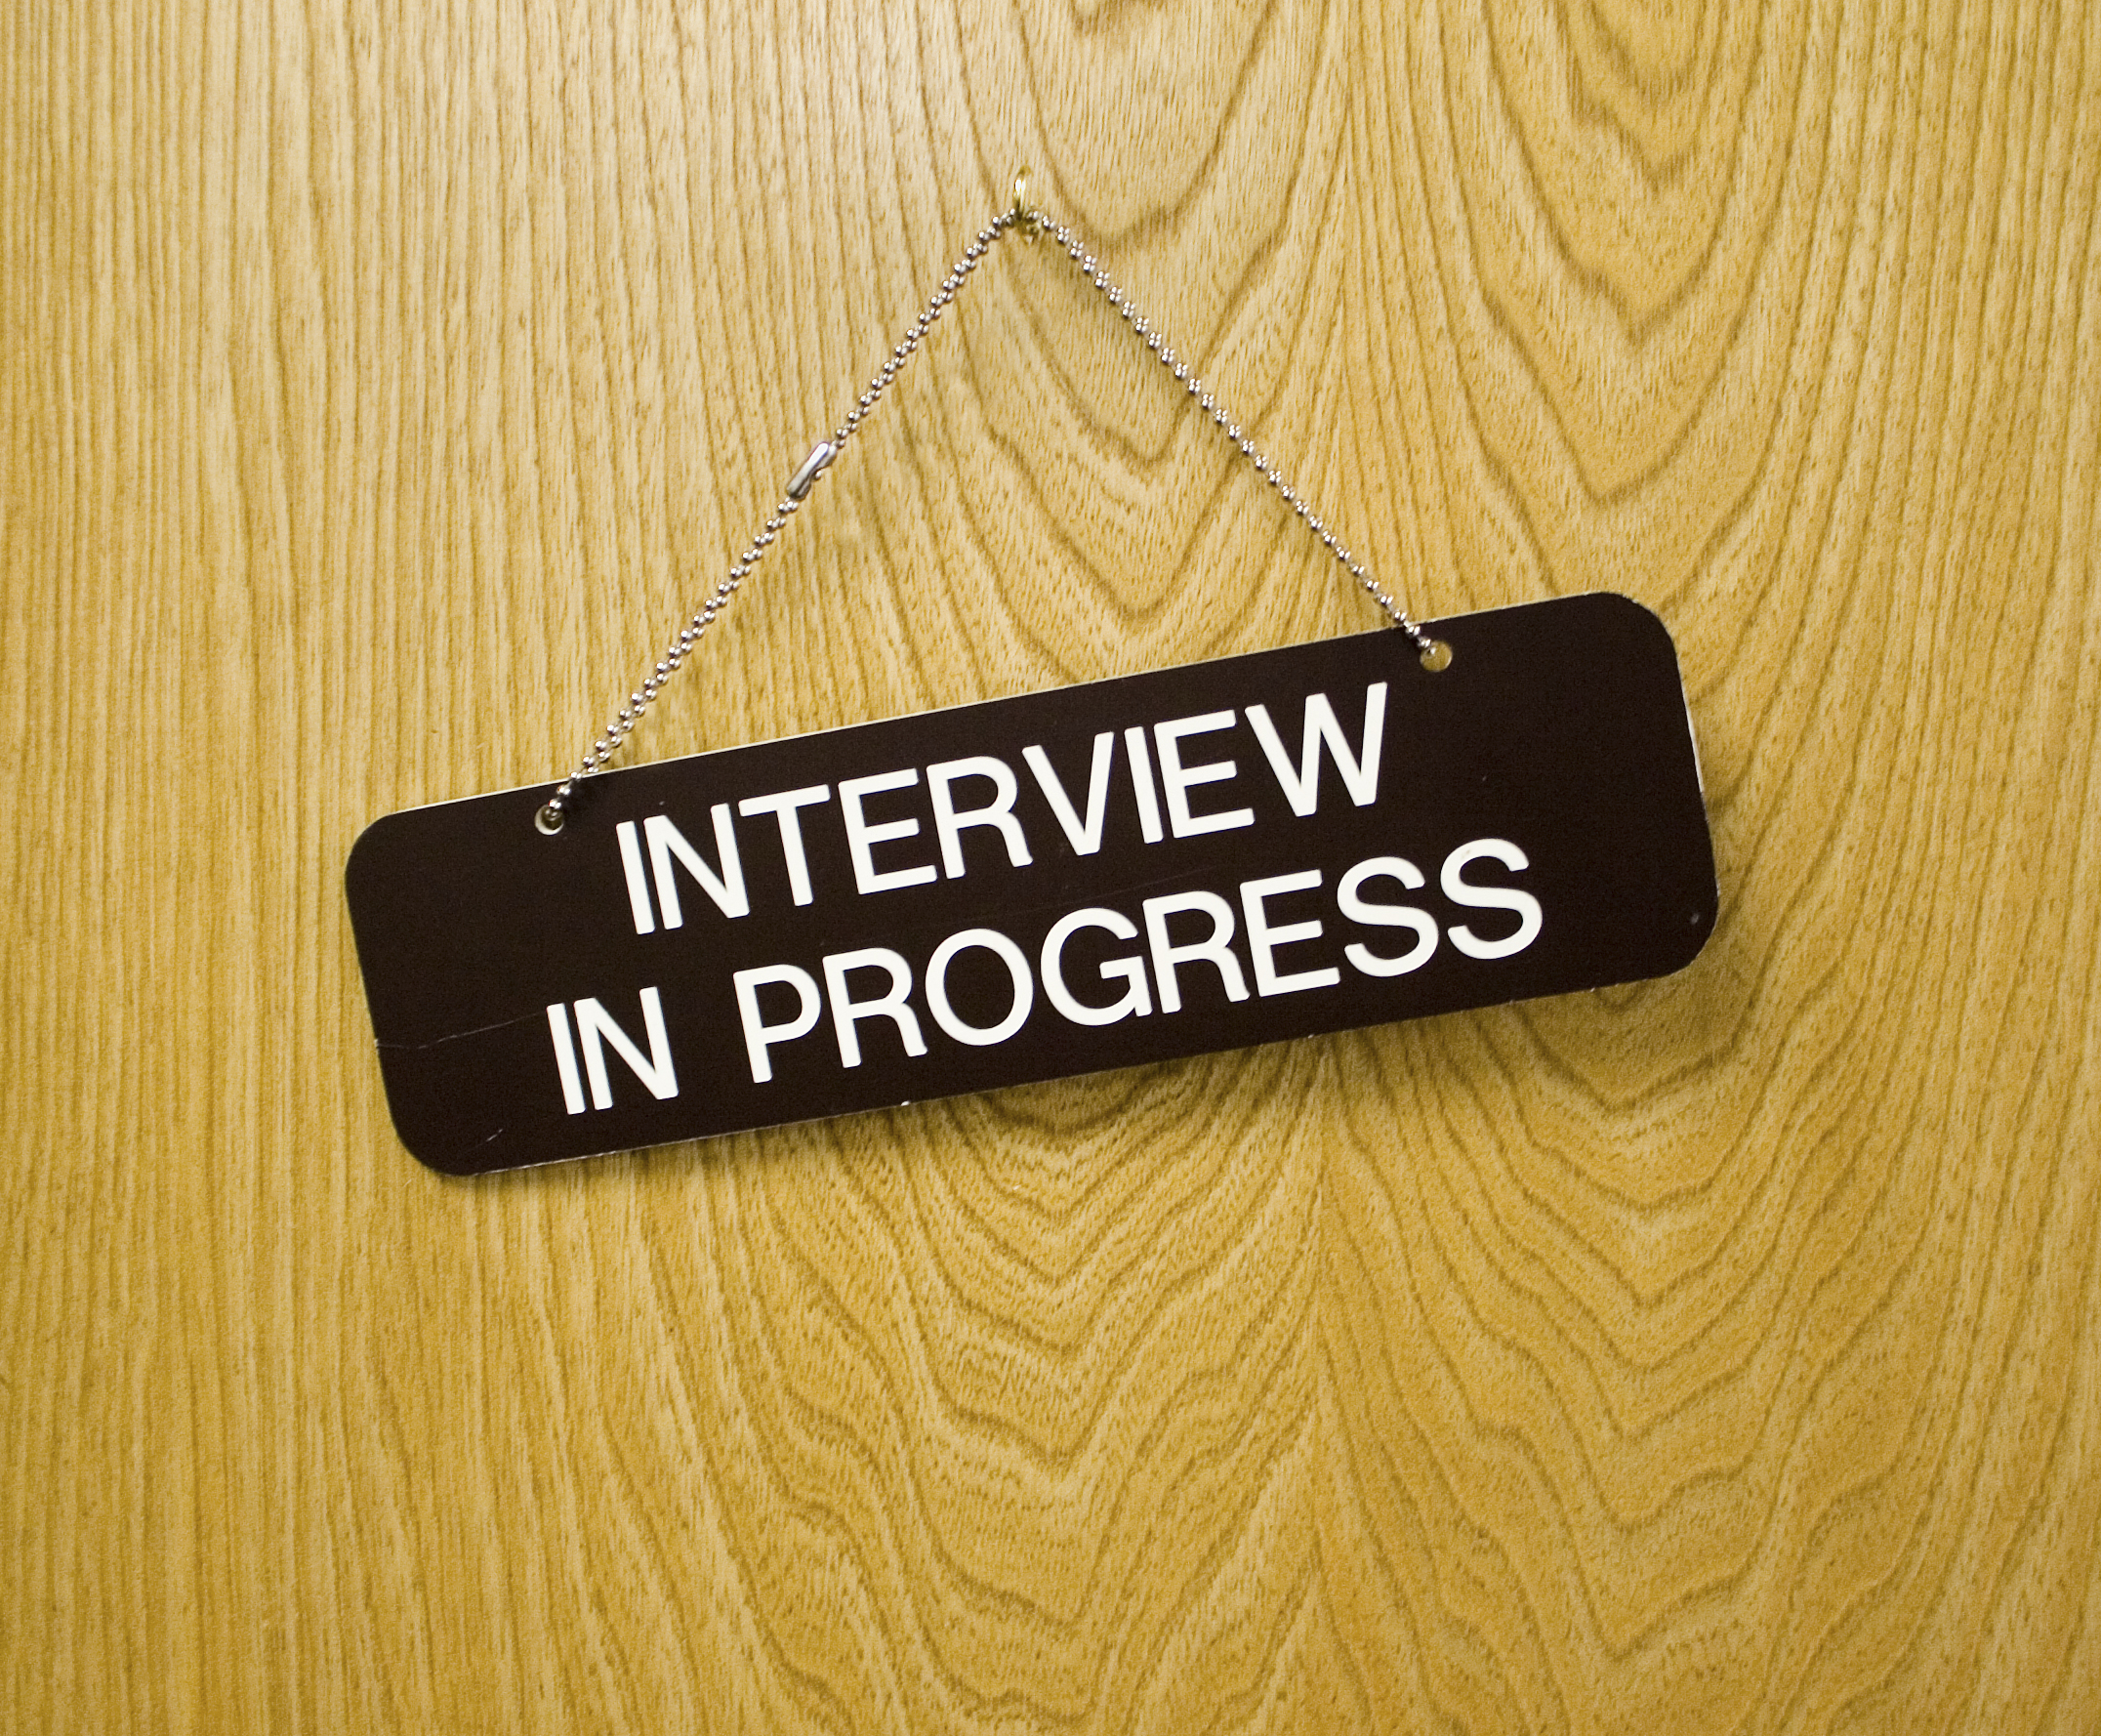 6 great interview questions and why you should ask them